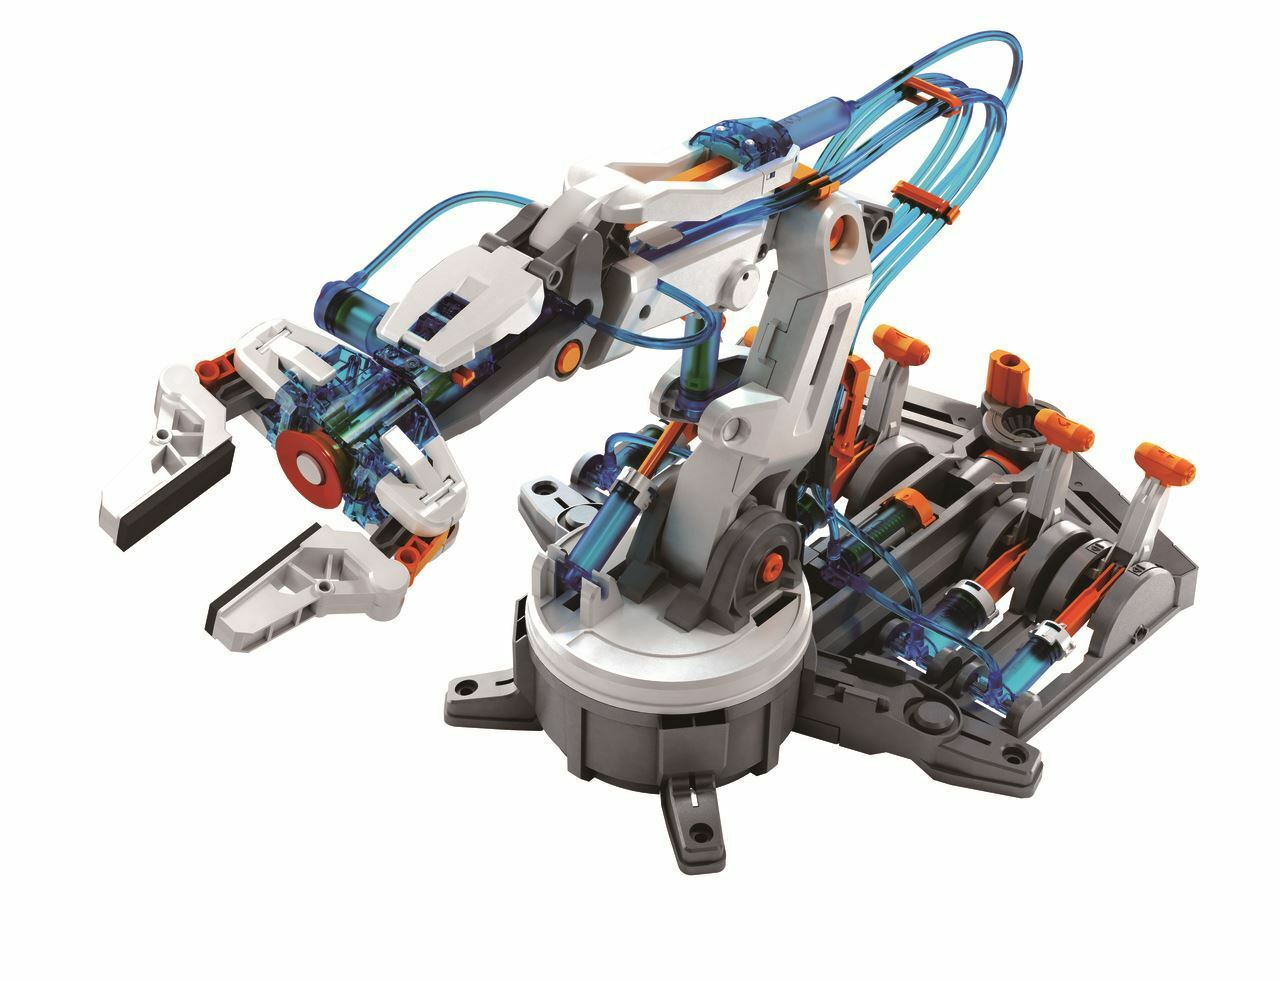 Hydraulische Roboterarm Remote Remote Remote Controlled Kinder Educational Kit bca5fb